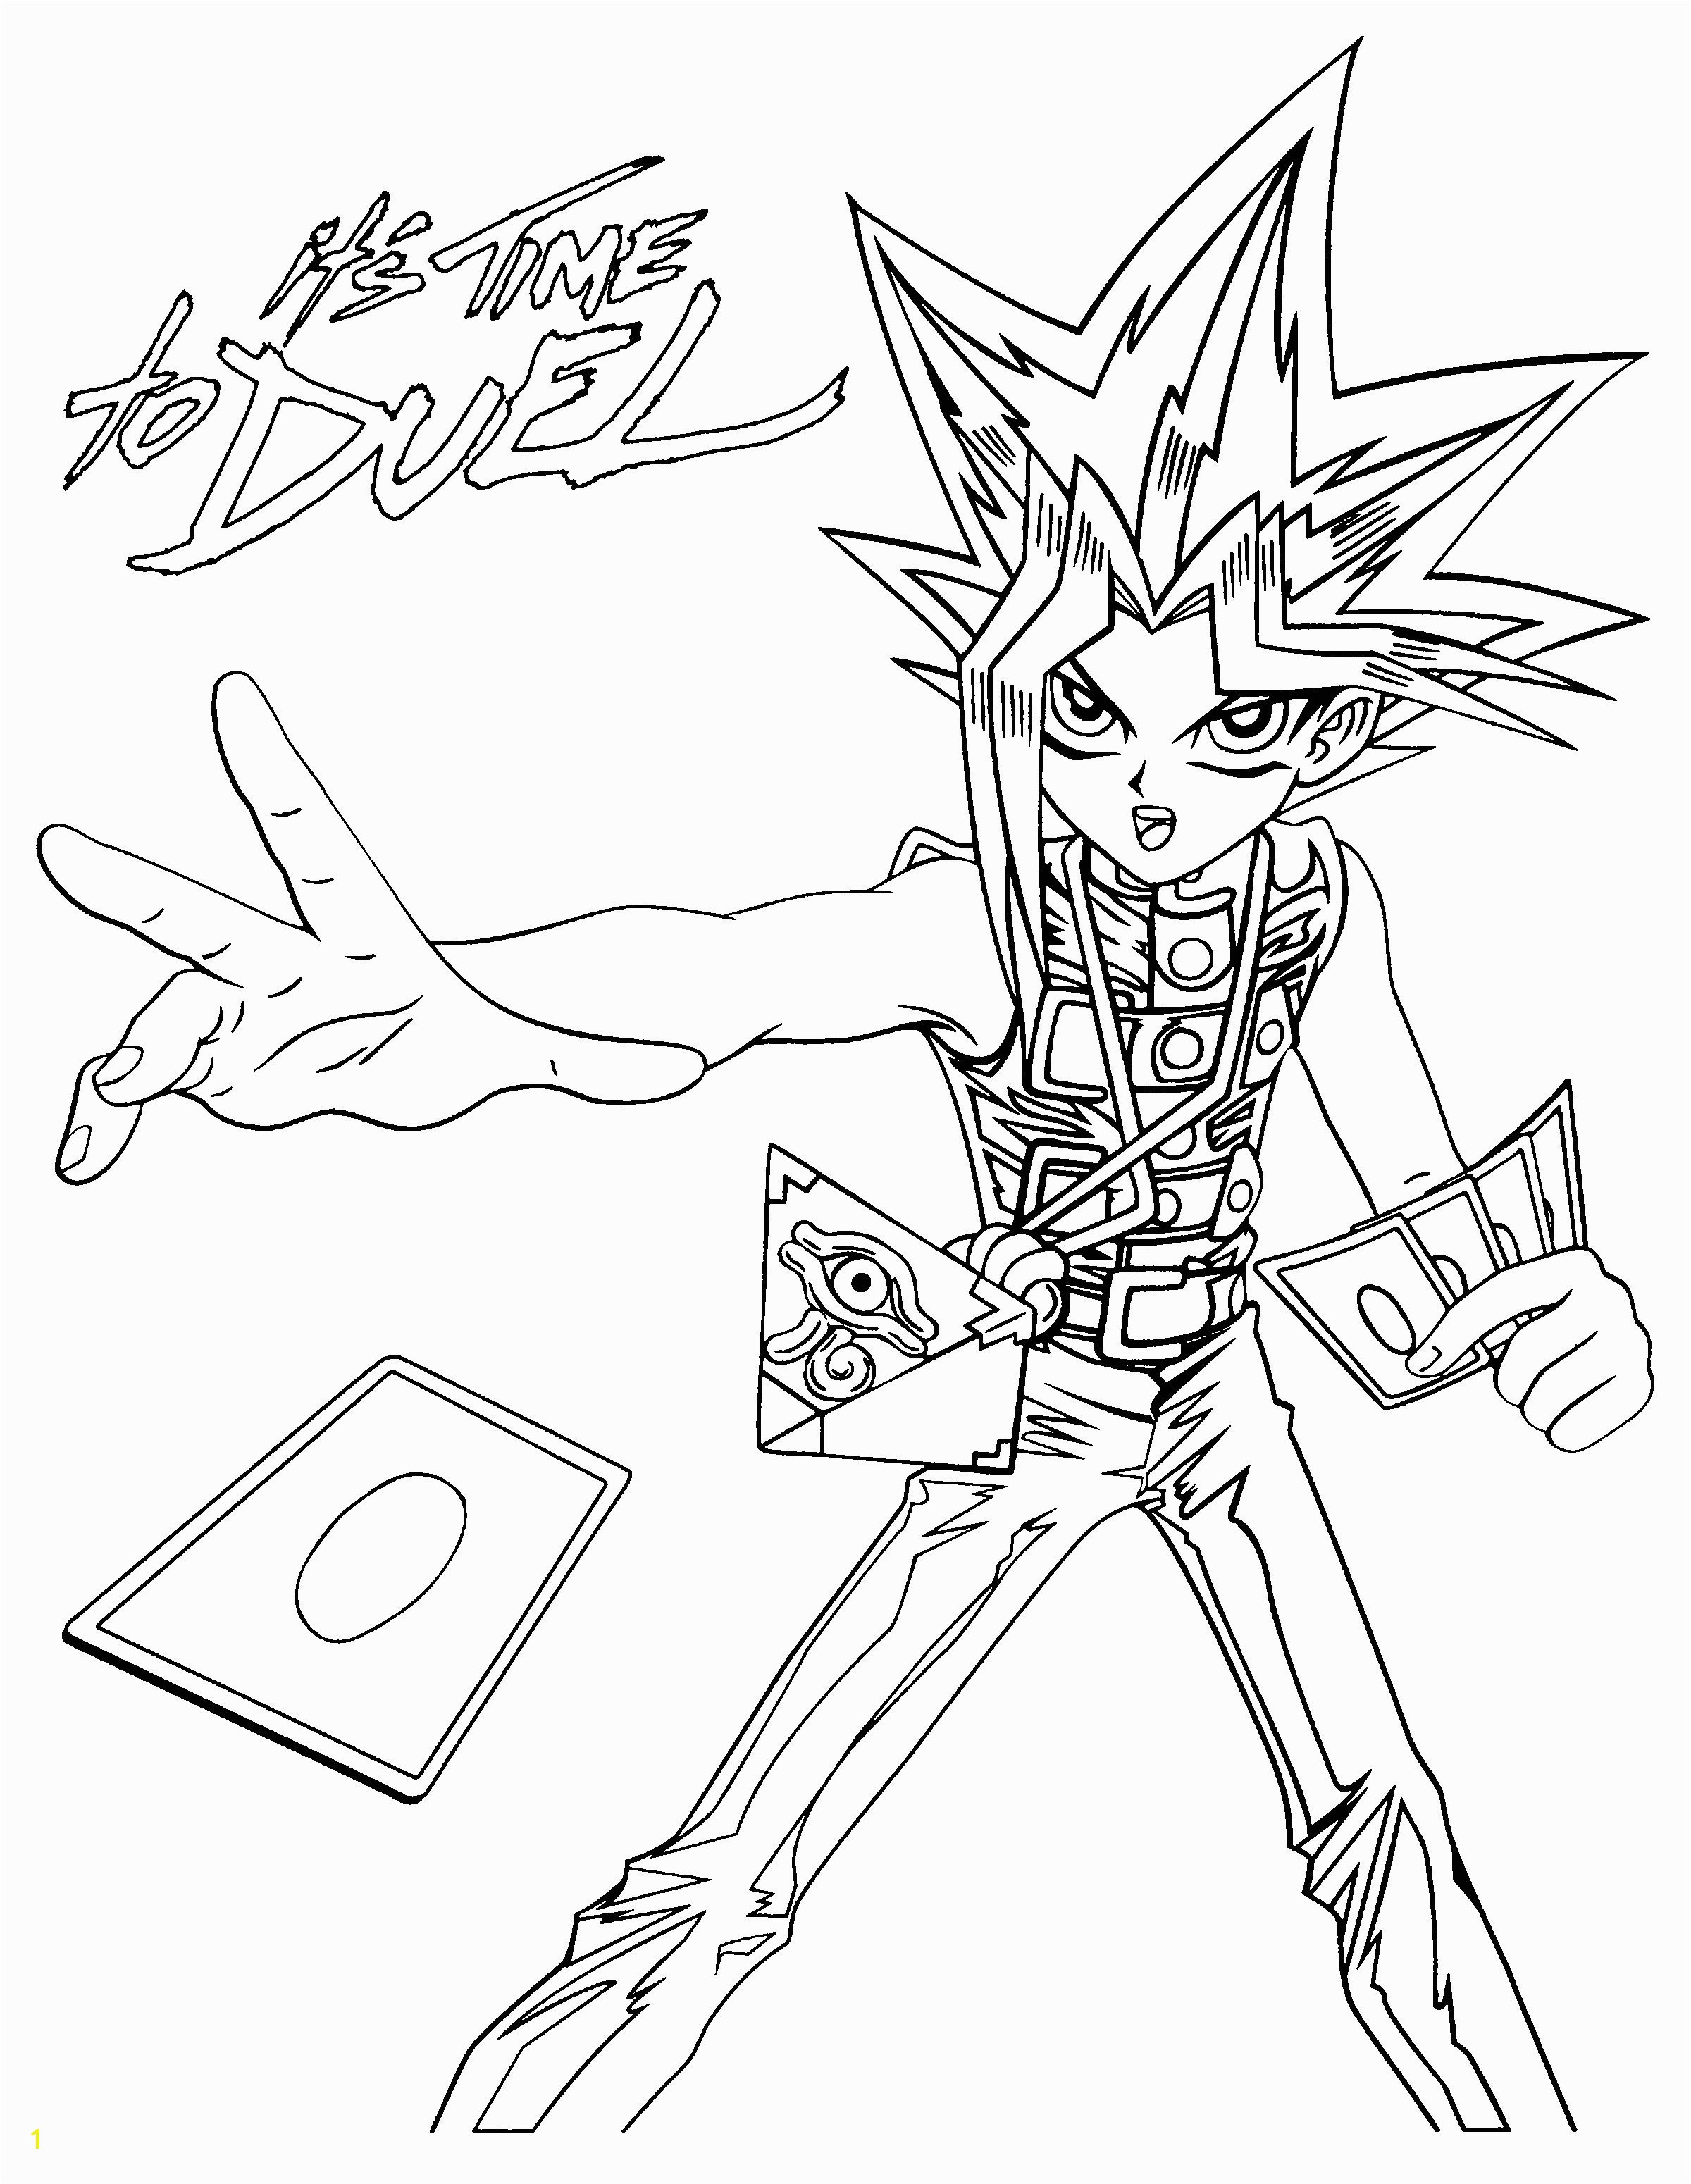 Yugioh Coloring Pages Yugioh Coloring Pages Luxury Yu Gi Oh Coloring Pages Free